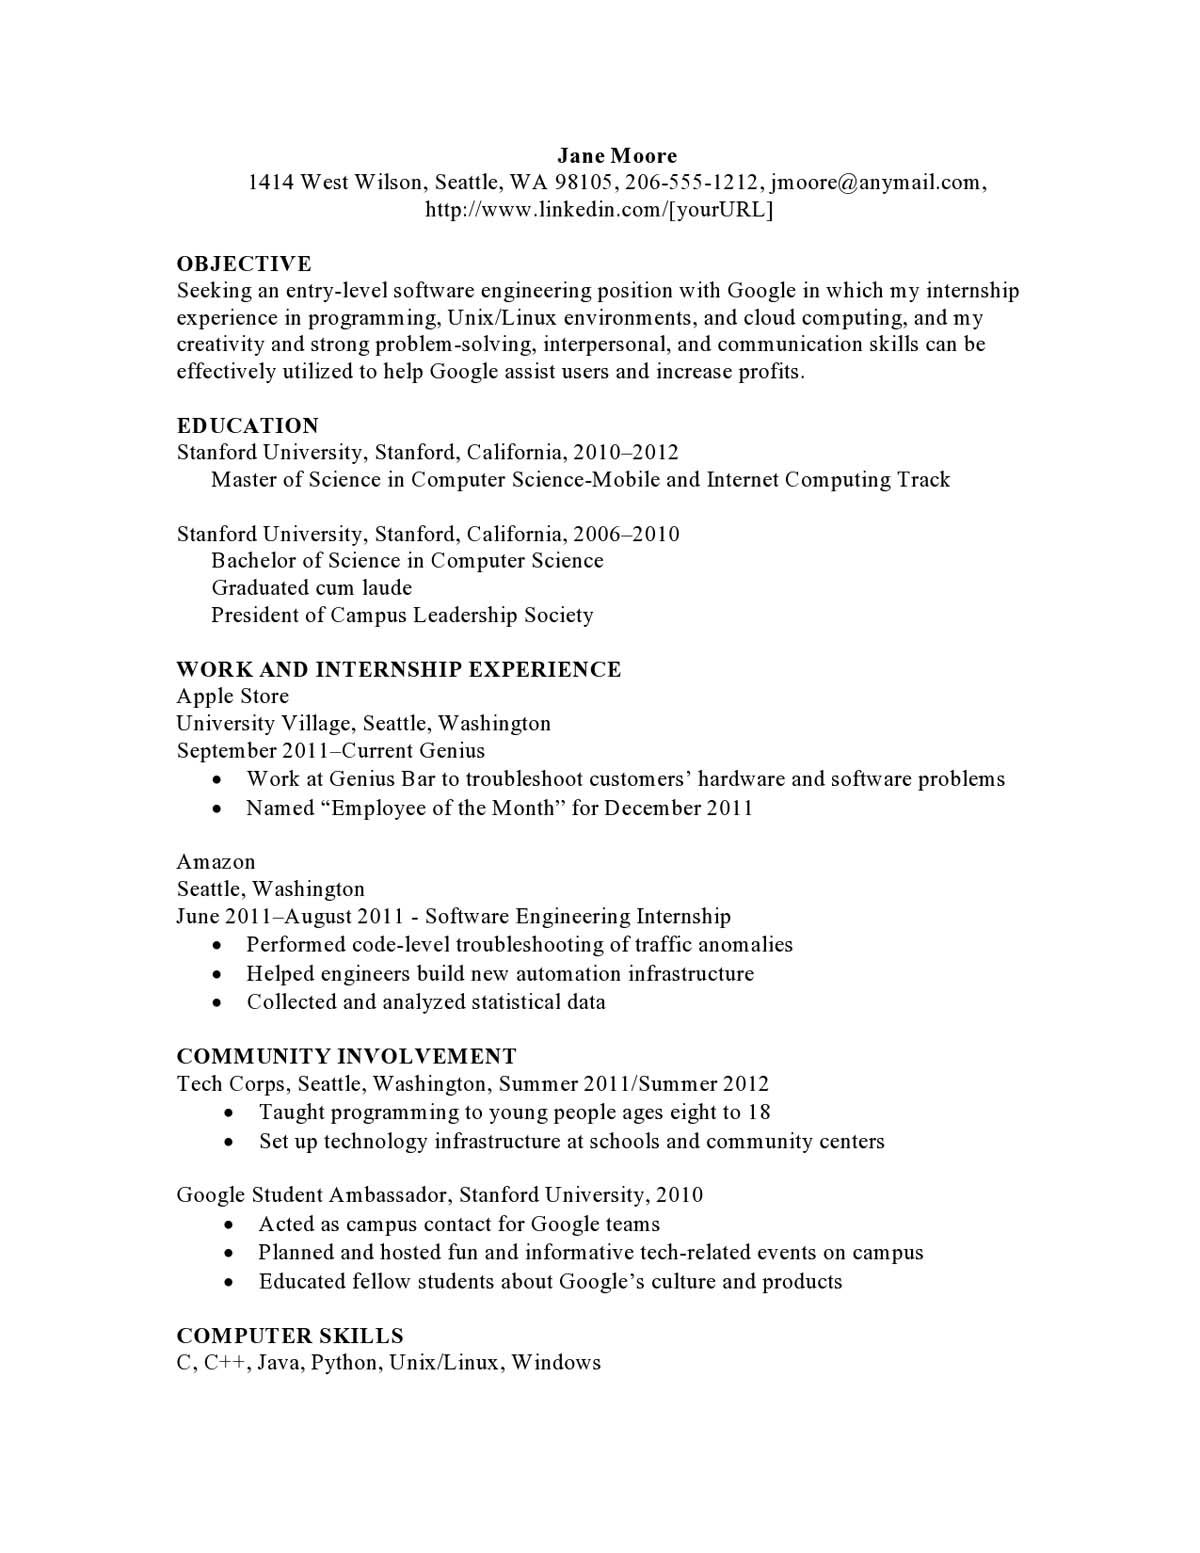 Apple Store Resume Mesmerizing Computer Software Entry Level Combination Resume  Get Ahead .